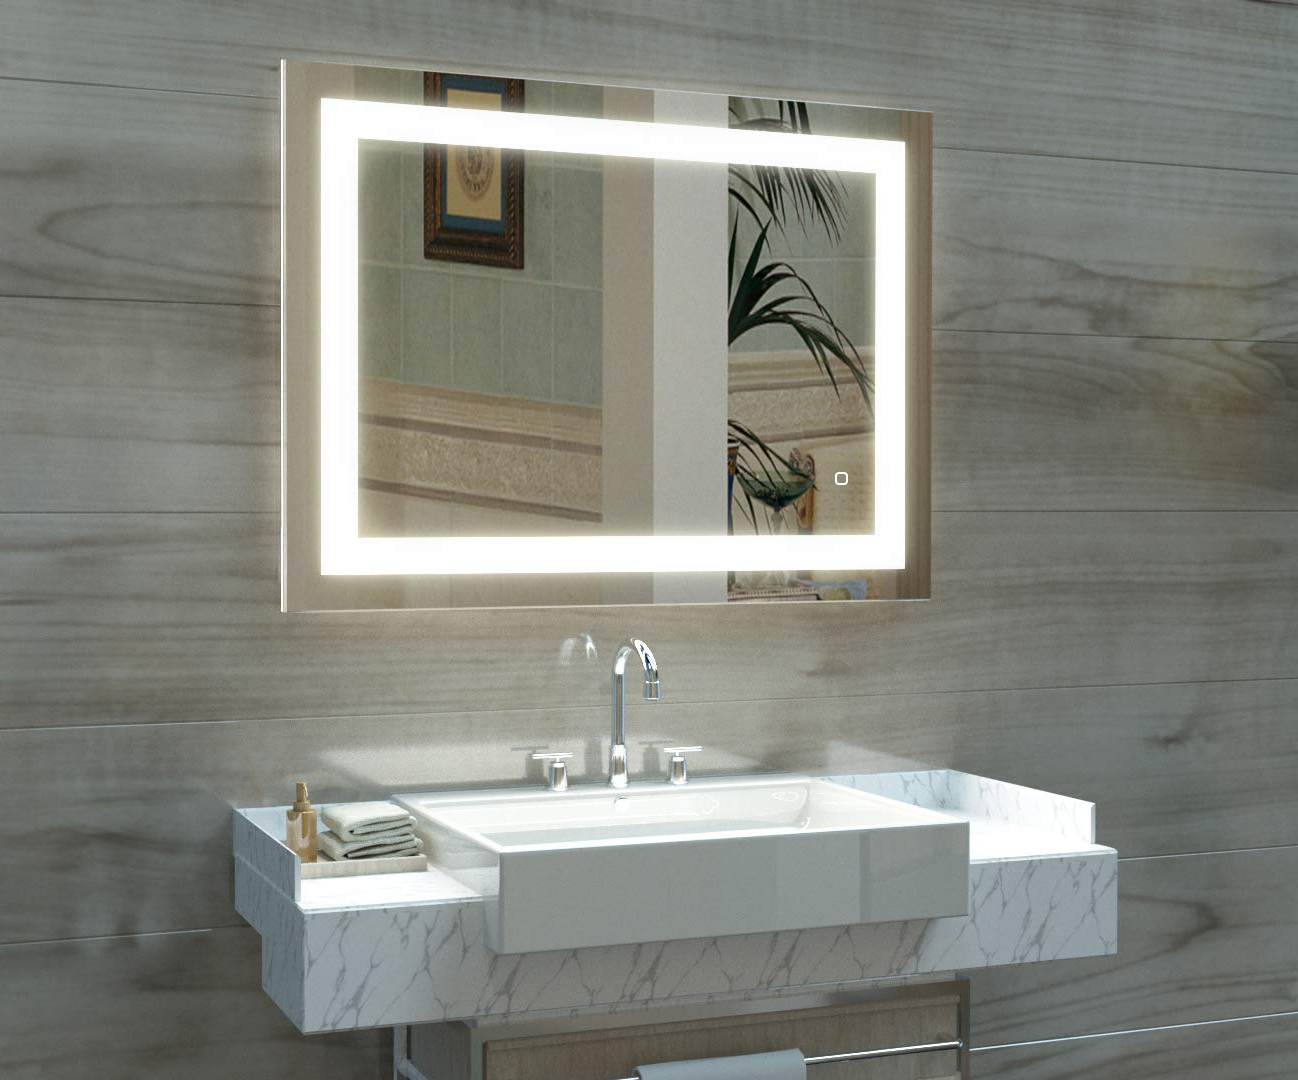 Famous Lighted Bathroom Wall Mirrors Regarding Hauschen 36 X 28 Inch Led Lighted Bathroom Wall Mounted Mirror With 5500k High Lumen + Cri 90 Cold White Lights And Anti Fog And Dimmable Memory Touch (View 16 of 20)